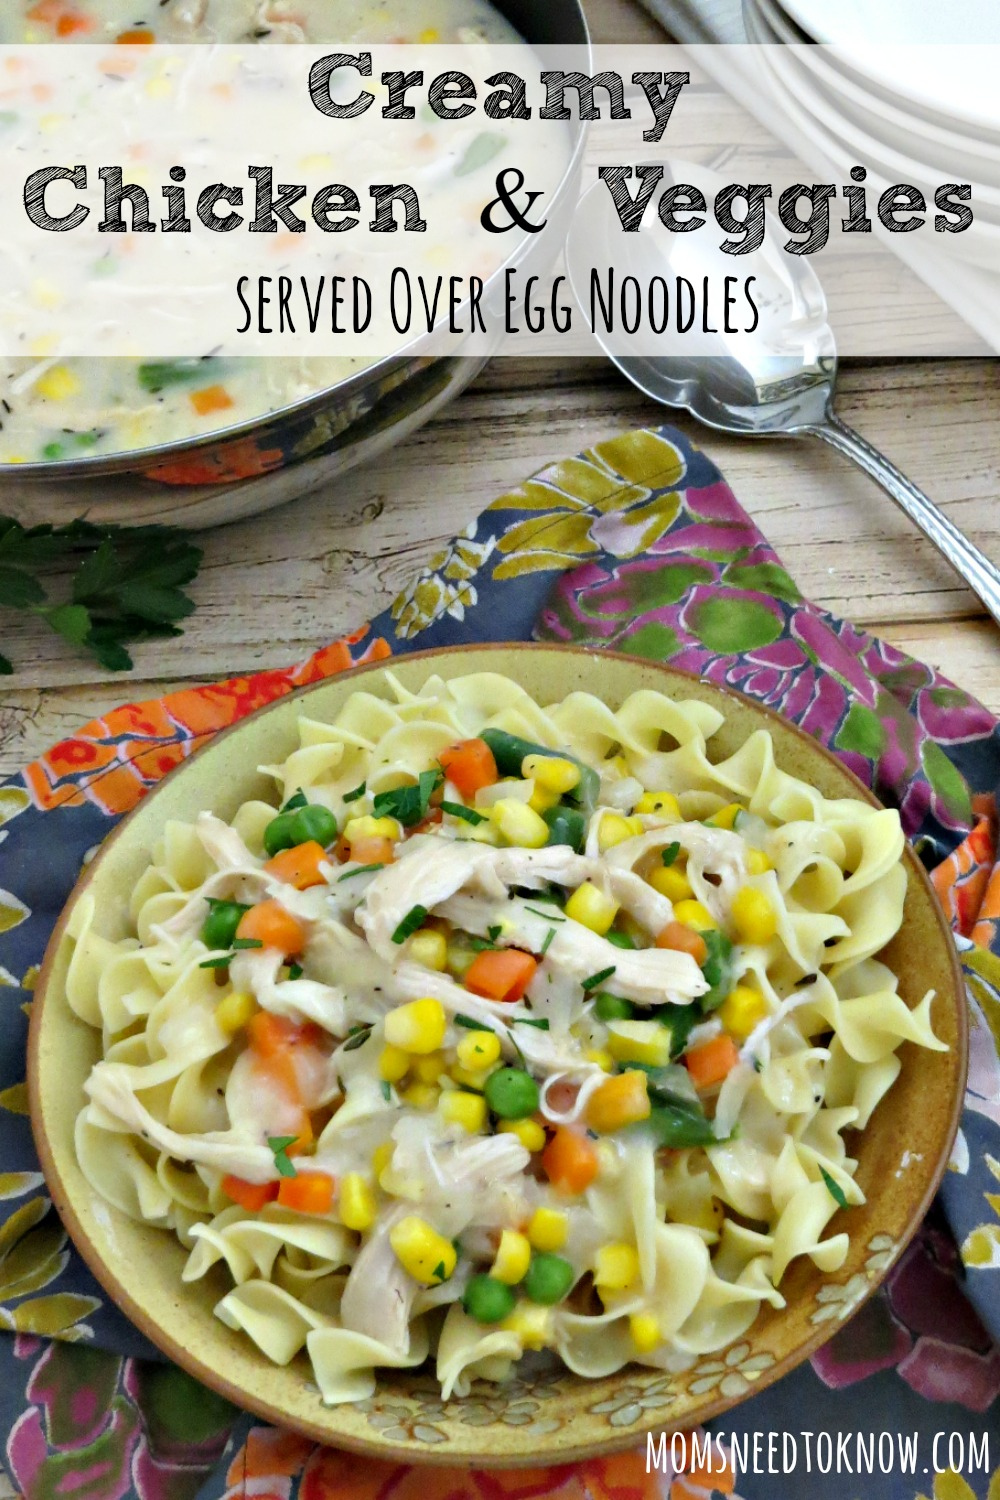 This creamy chicken and vegetables dish is made without the use of processed canned soup. It is absolutely delicious and made with real foods!